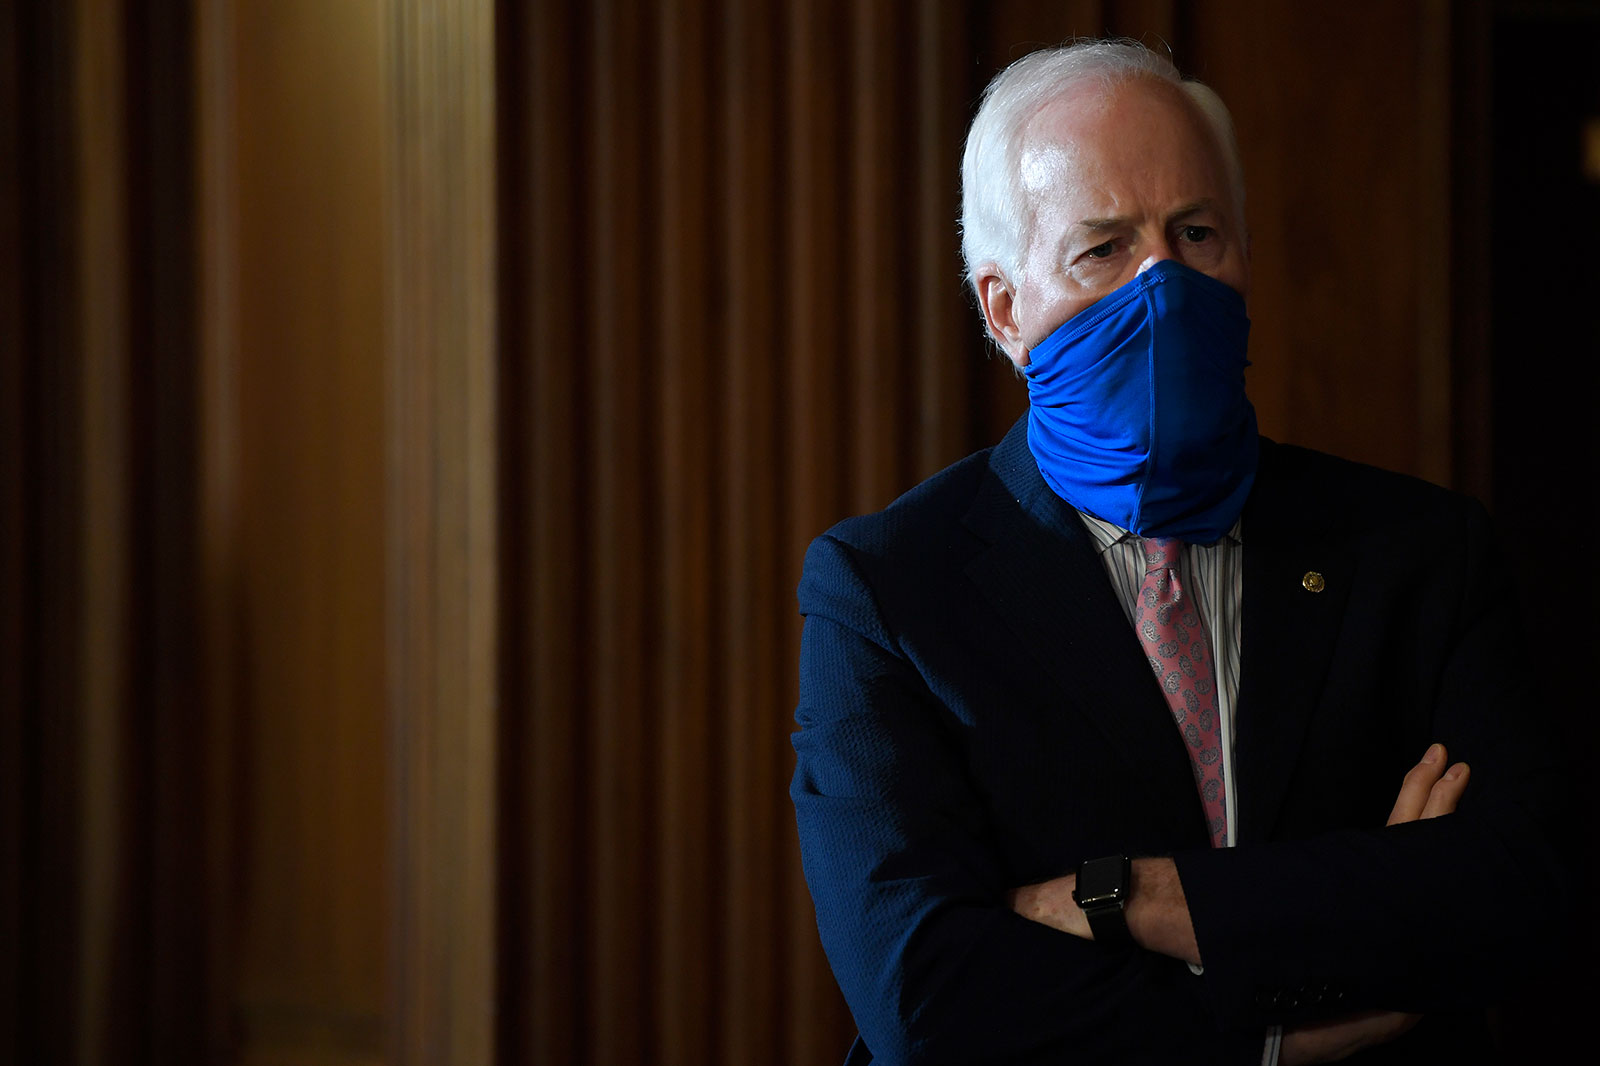 Sen. John Cornyn listens during a news conference in Washington, DC, on Monday, July 27.